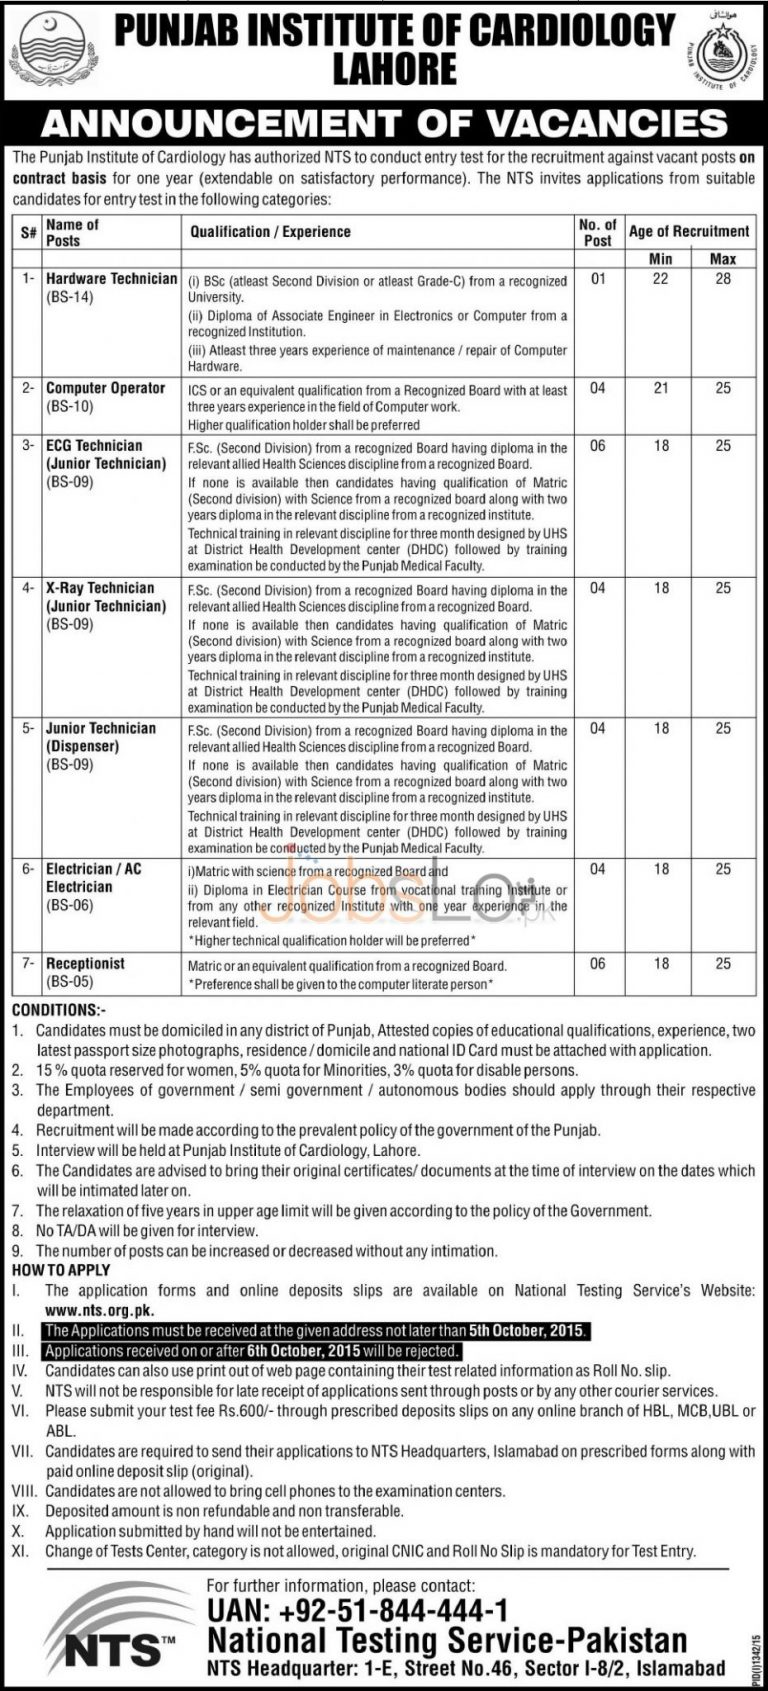 NTS Punjab Institute of Cardiology Lahore Jobs 2015 Download Application Form